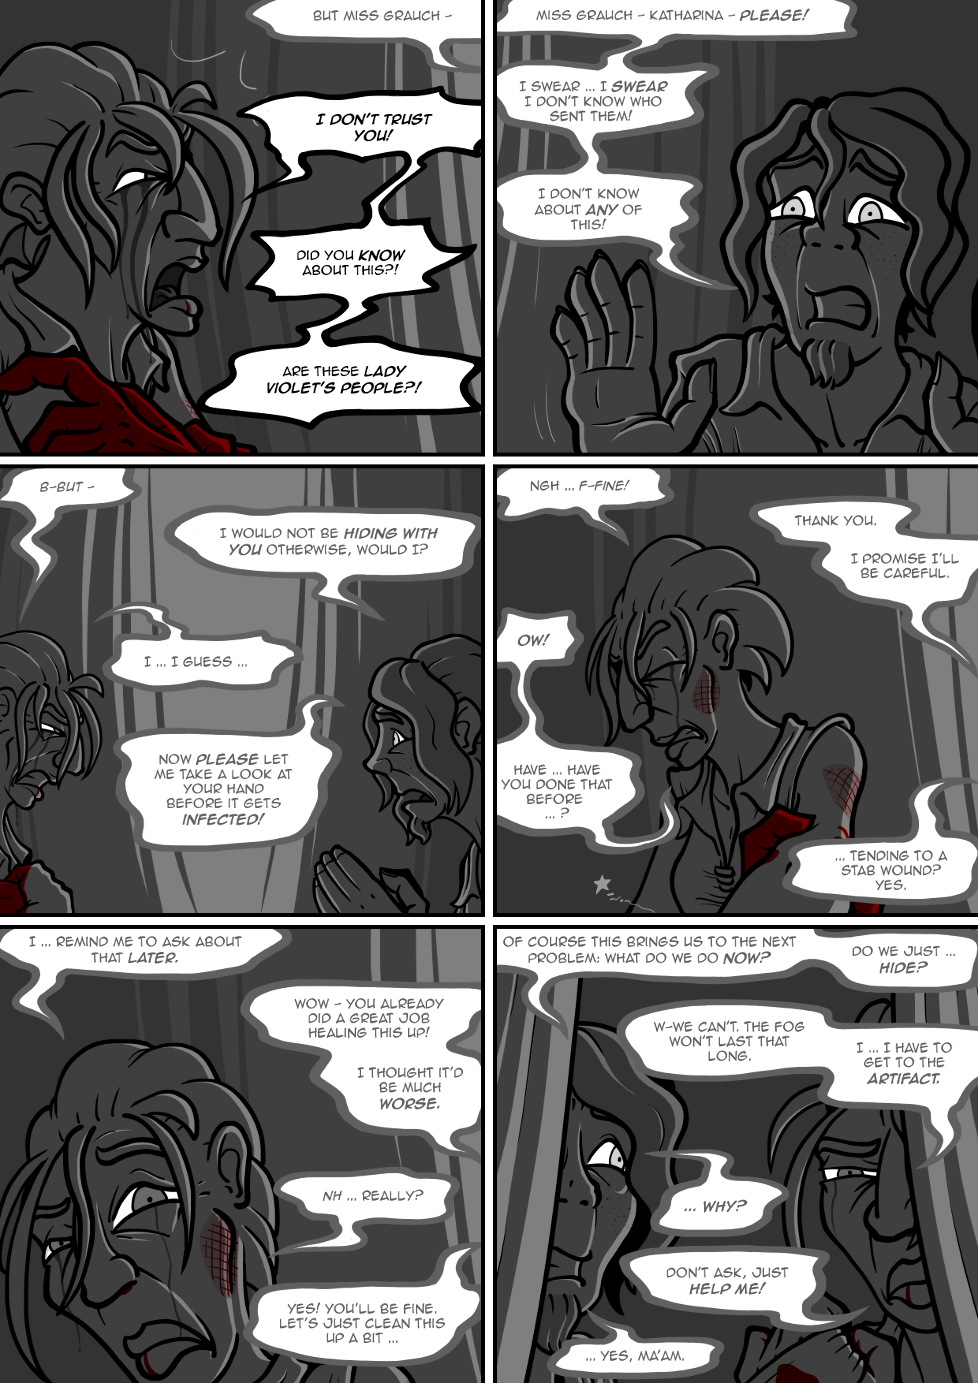 I swear I'm not trying to make each new page a bit darker, it just happens!